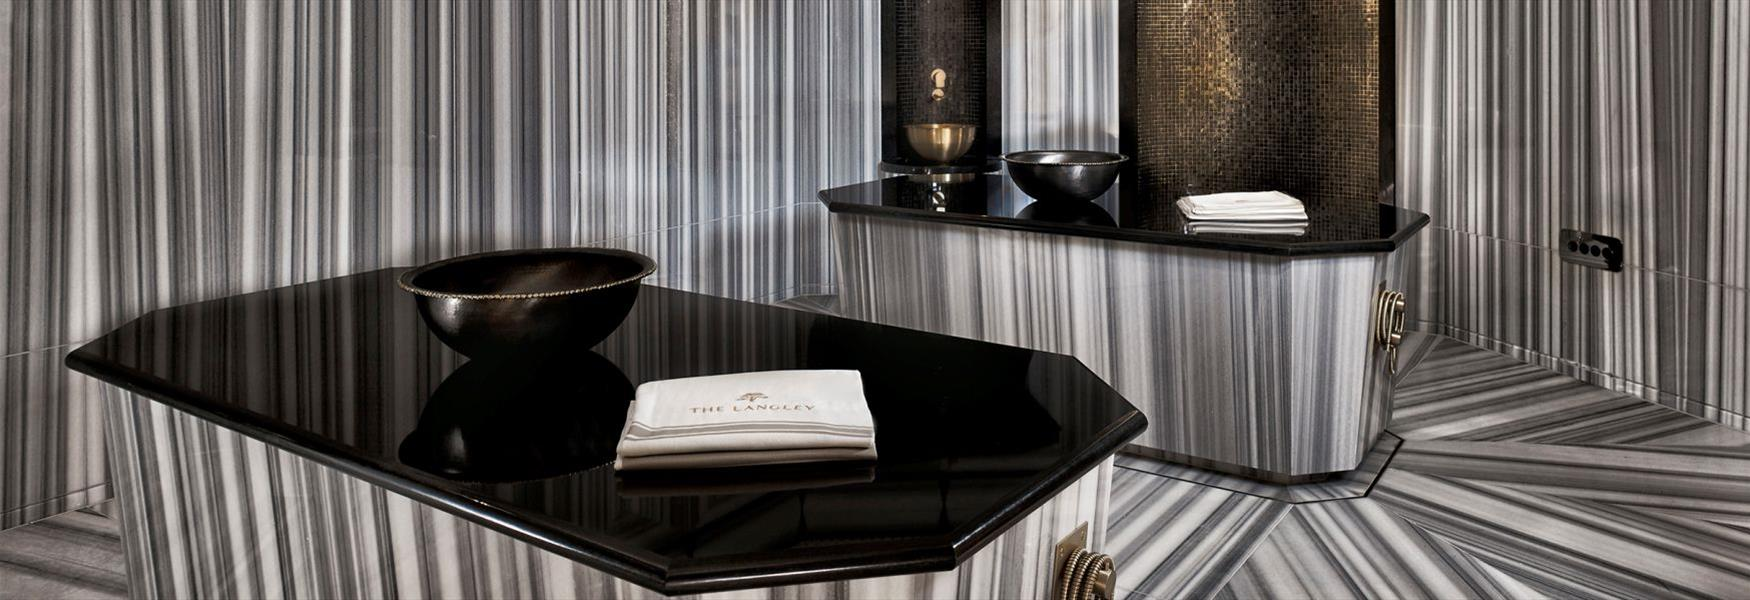 Double Hammam at The Langley Spa